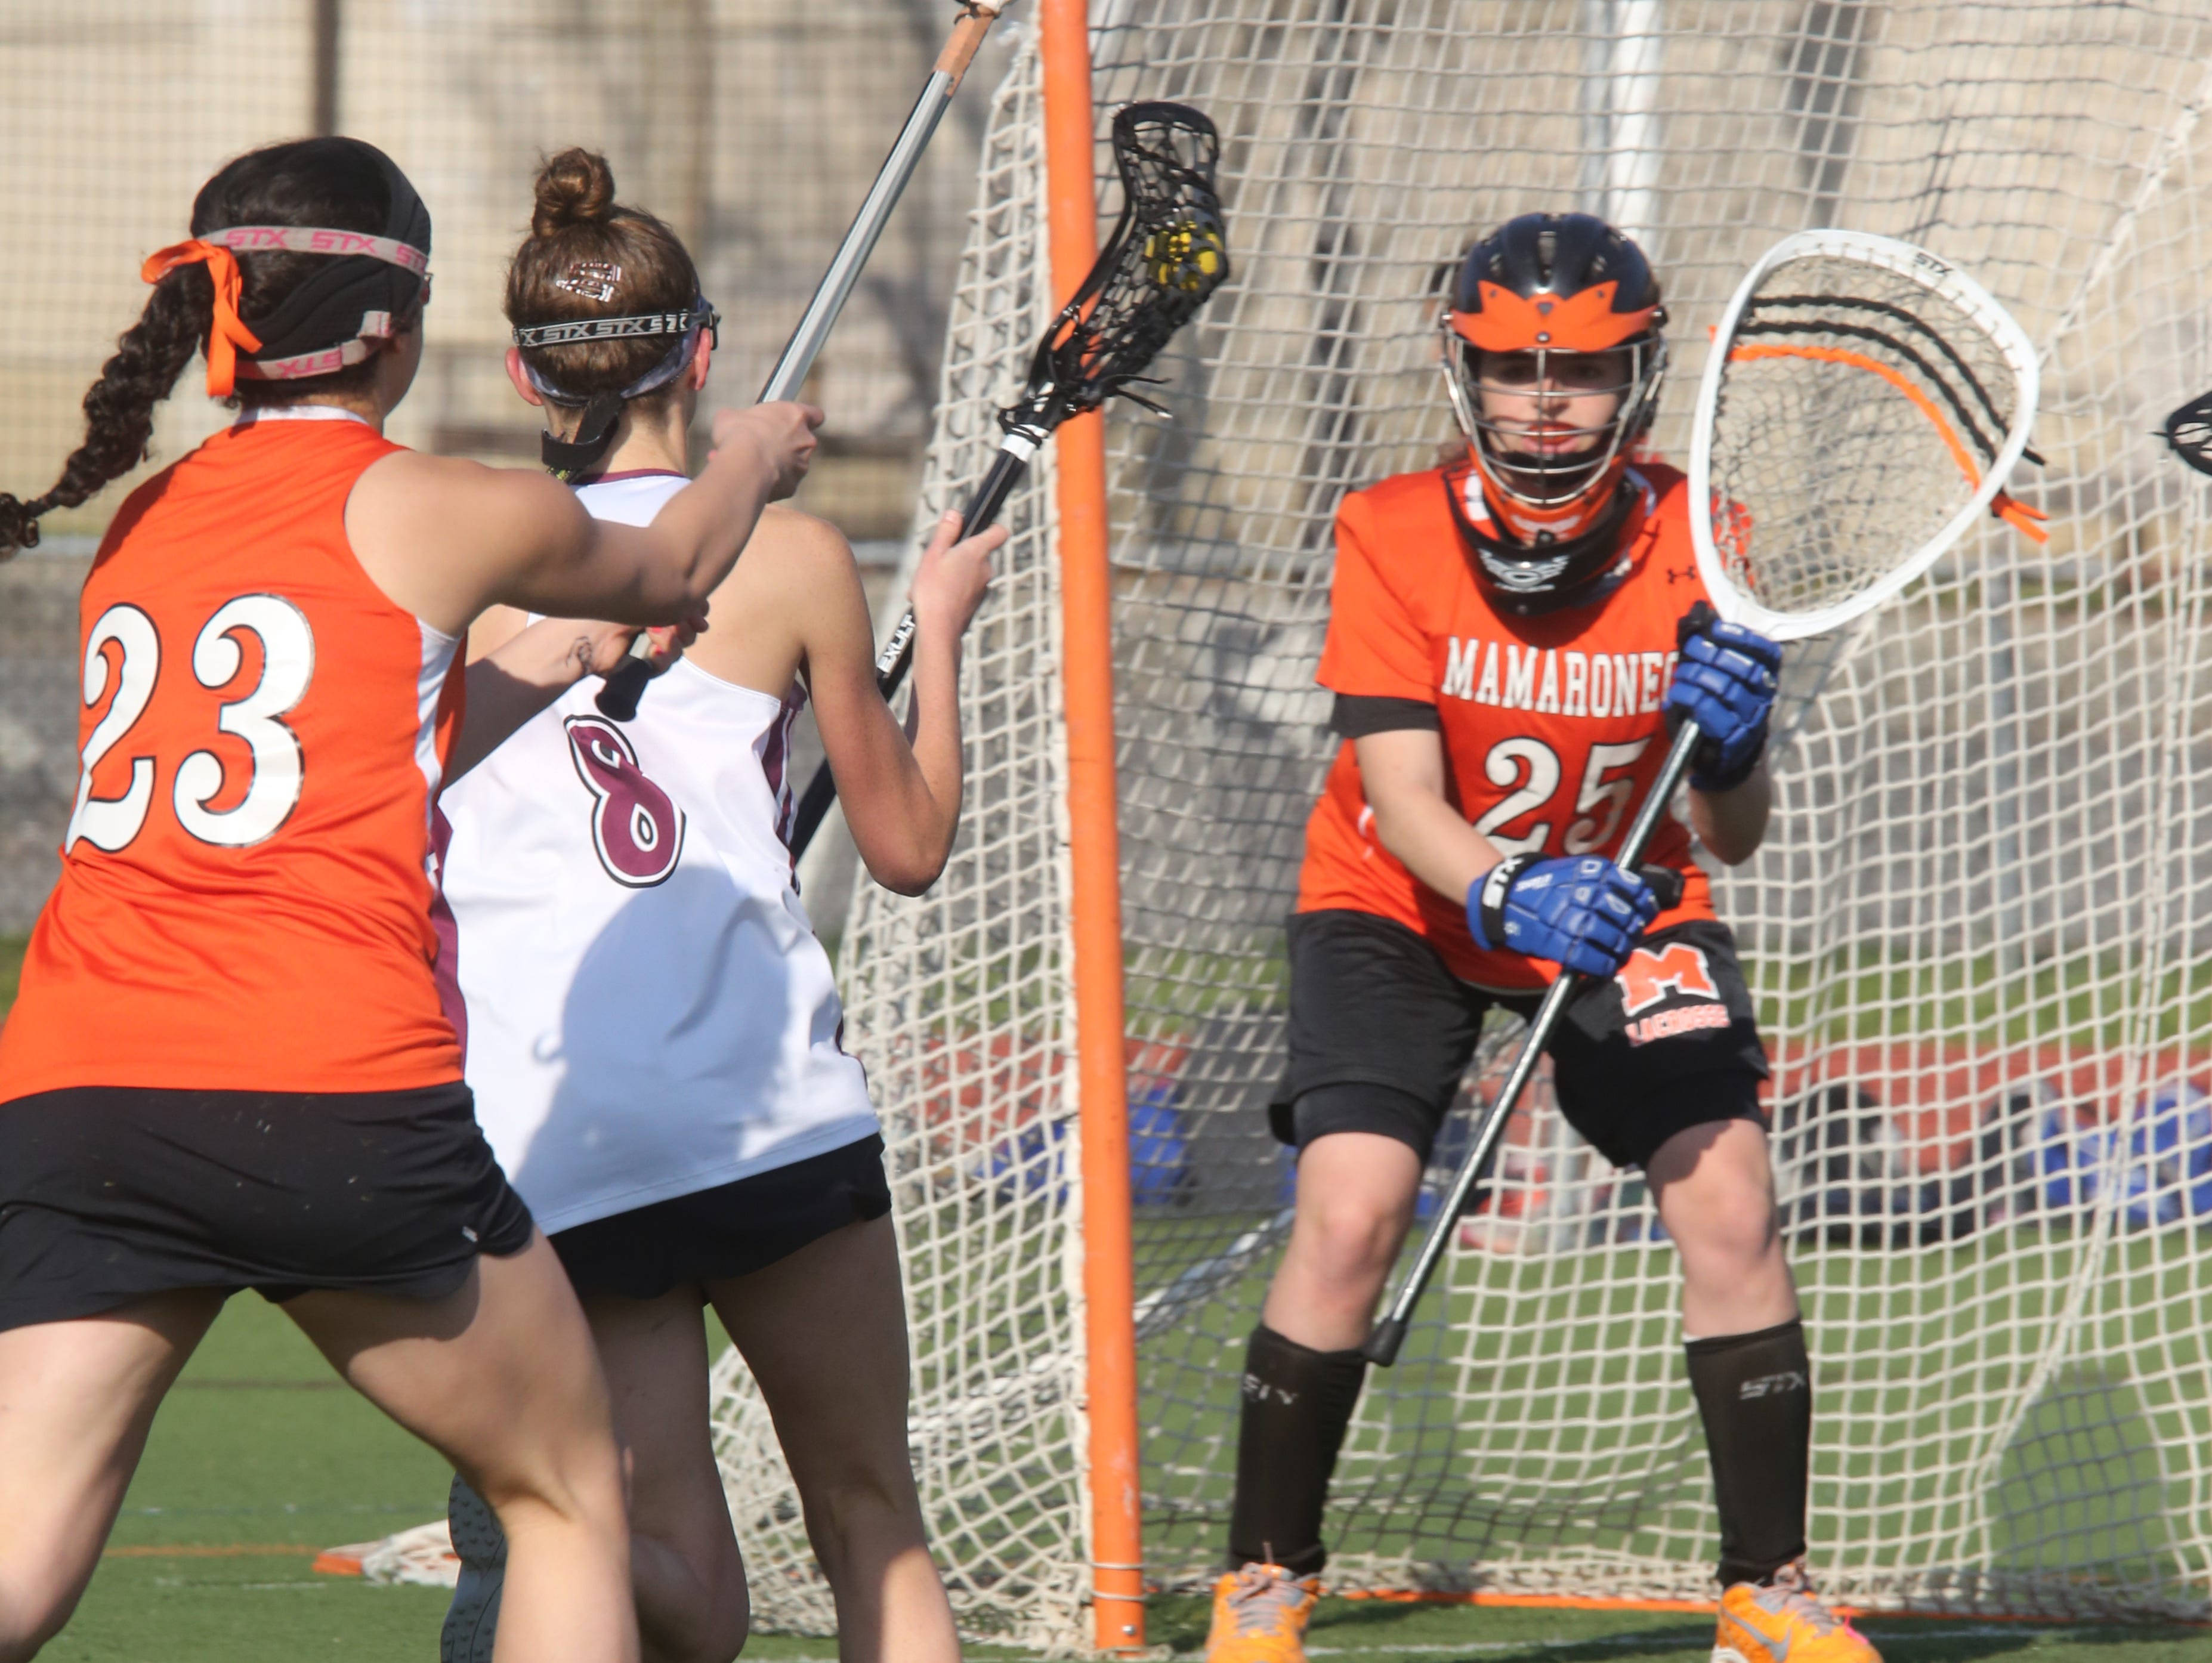 Mamaroneck's Talia Land (25) guards the net against Scarsdale during girls lacrosse game at Scarsdale High School on April 27, 2016. Mamaroneck defeats Scarsdale 9-7.